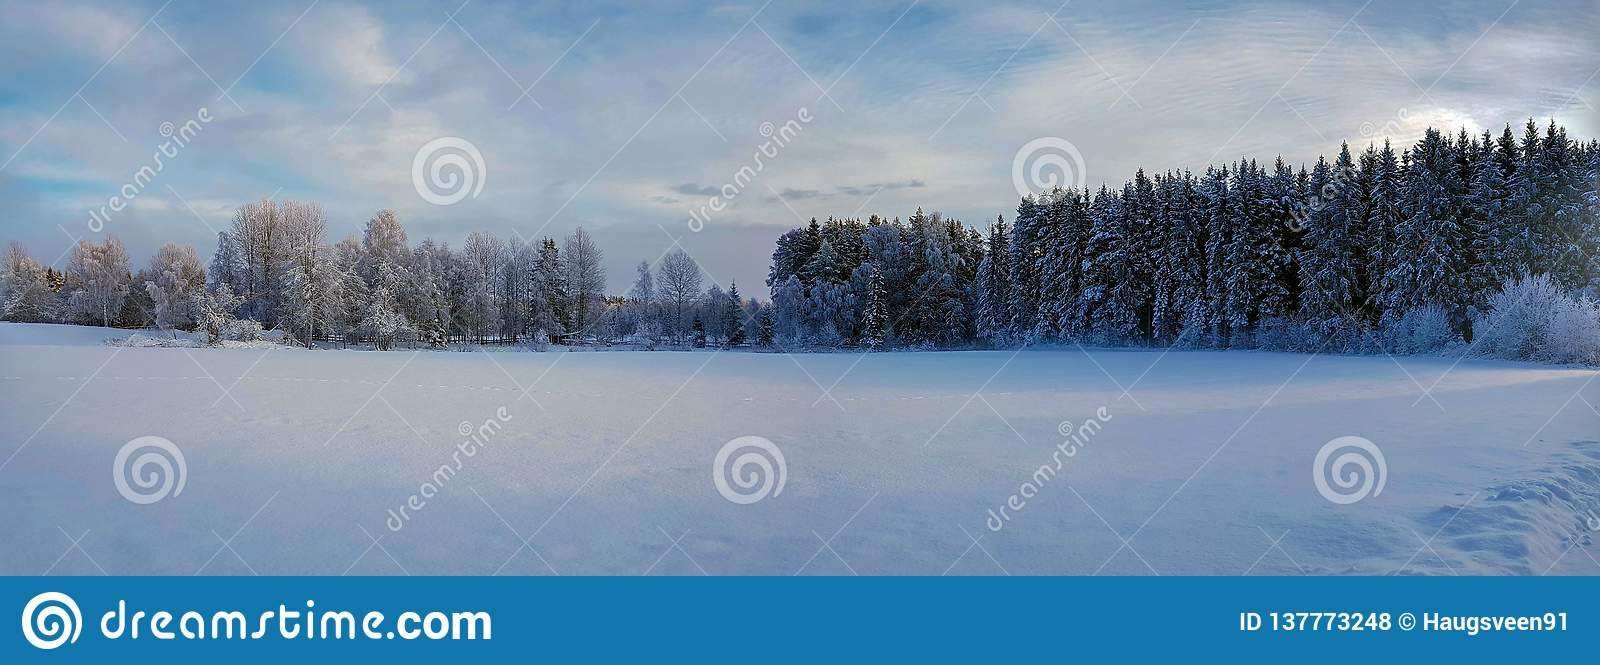 Panorama photo of winter landscape in Hedmark county Norway